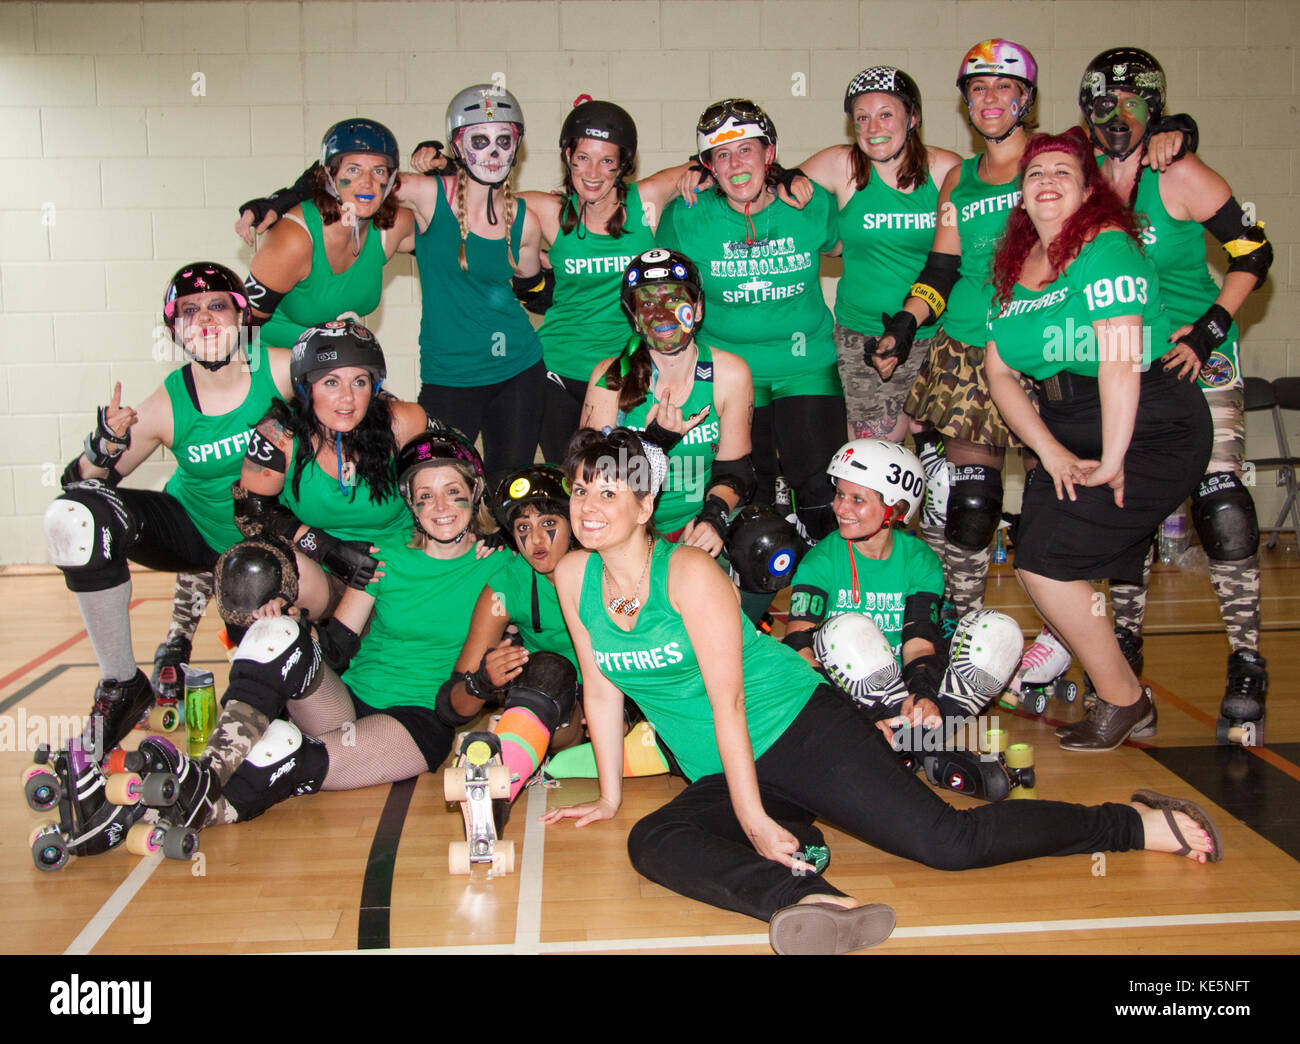 Roller derby skaters from various leagues competing as The Spitfires - Stock Image